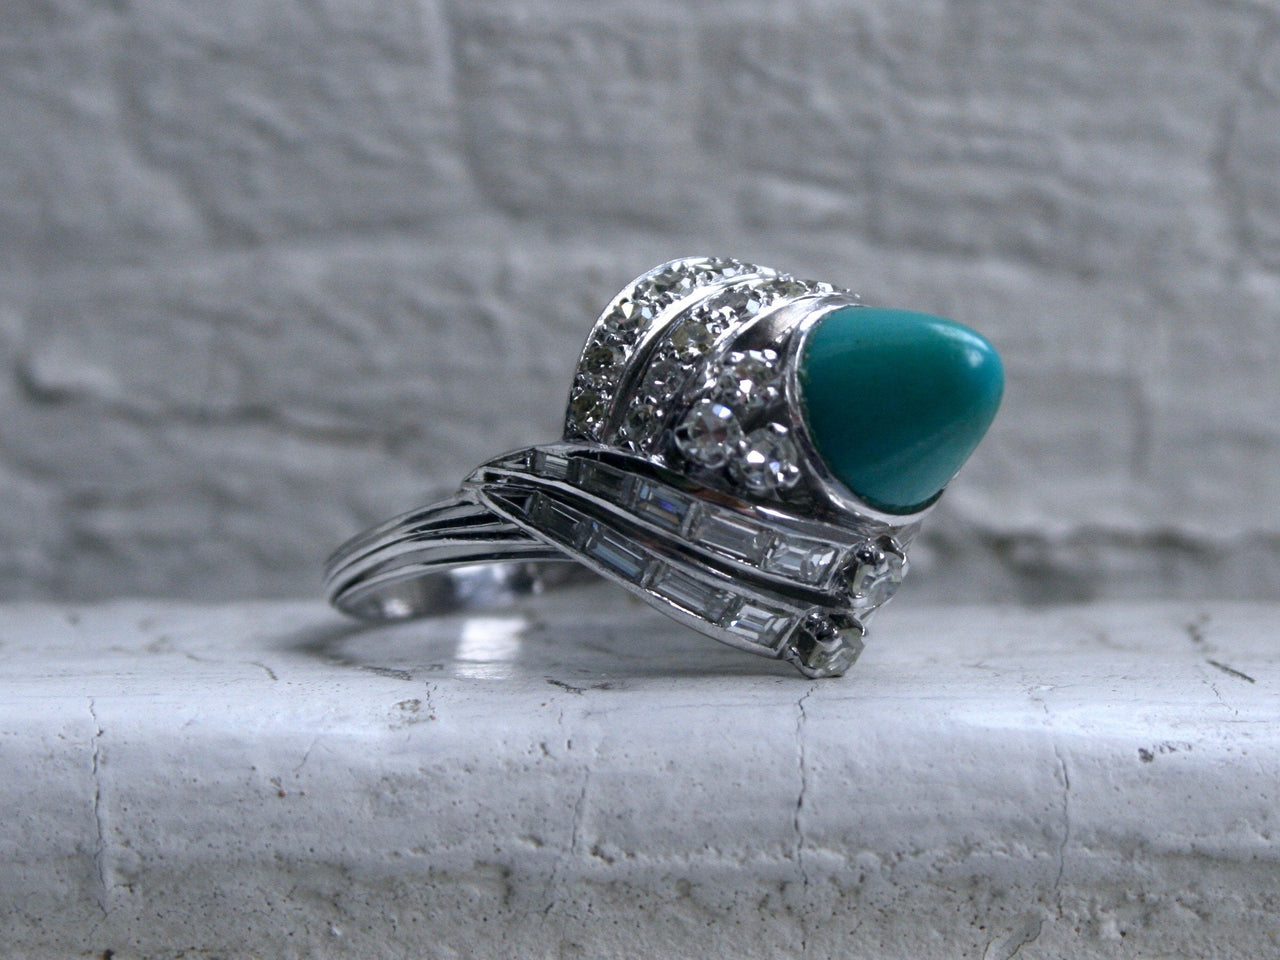 Amazing Antique Platinum Diamond and Turquoise Ring Engagement Ring.